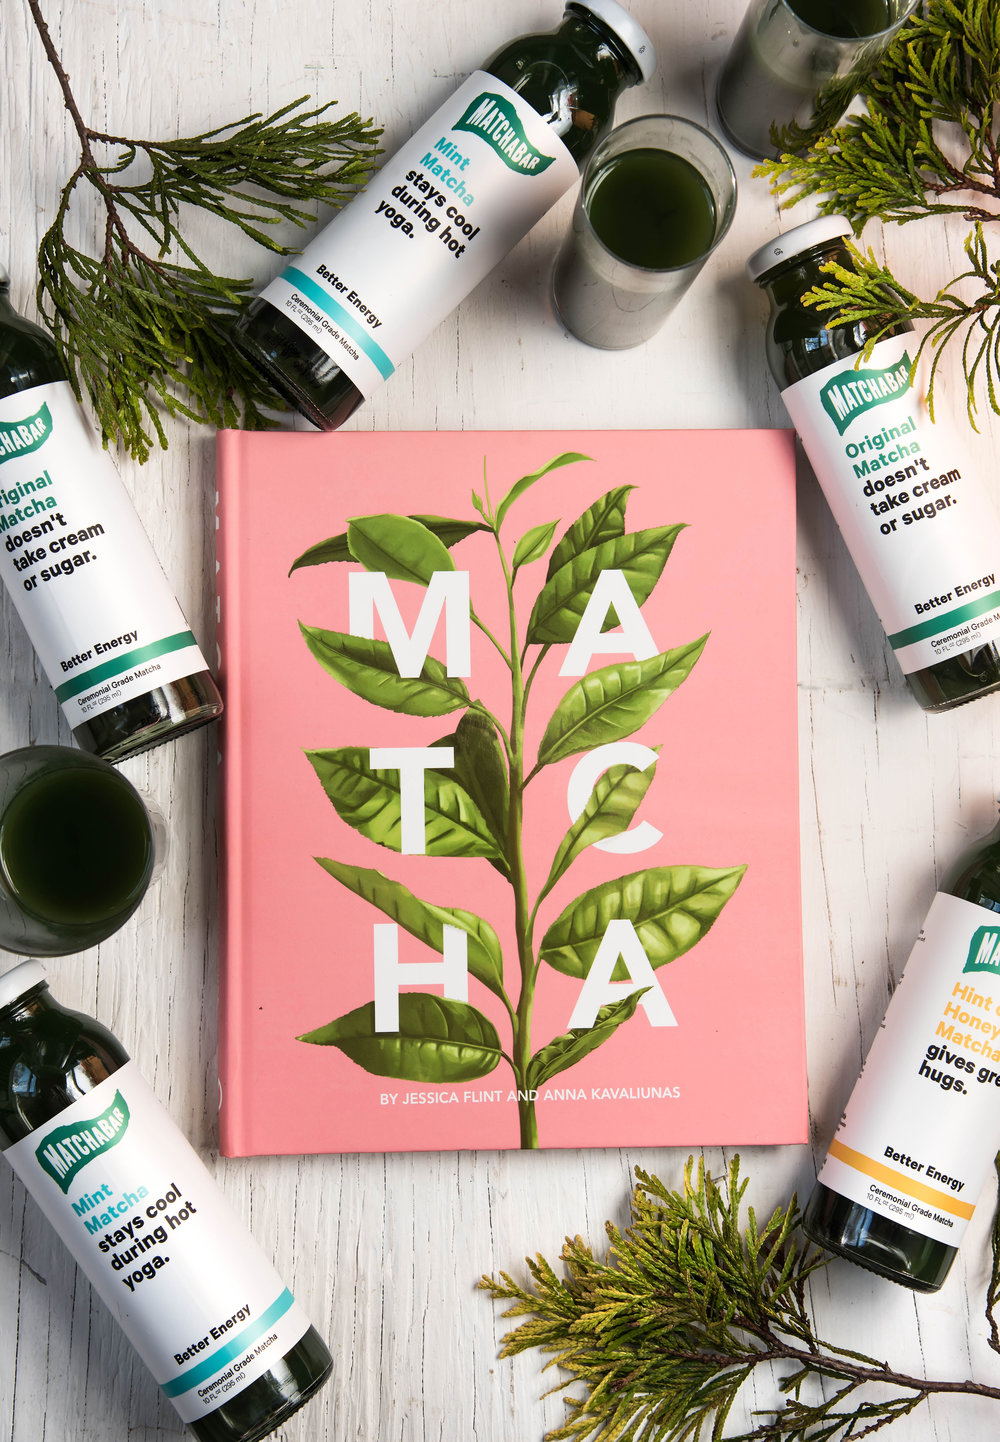 ROSE & IVY Journal Celebrate the Season The ROSE & IVY Gift Guide For the Caffeine Lover Matcha Tea